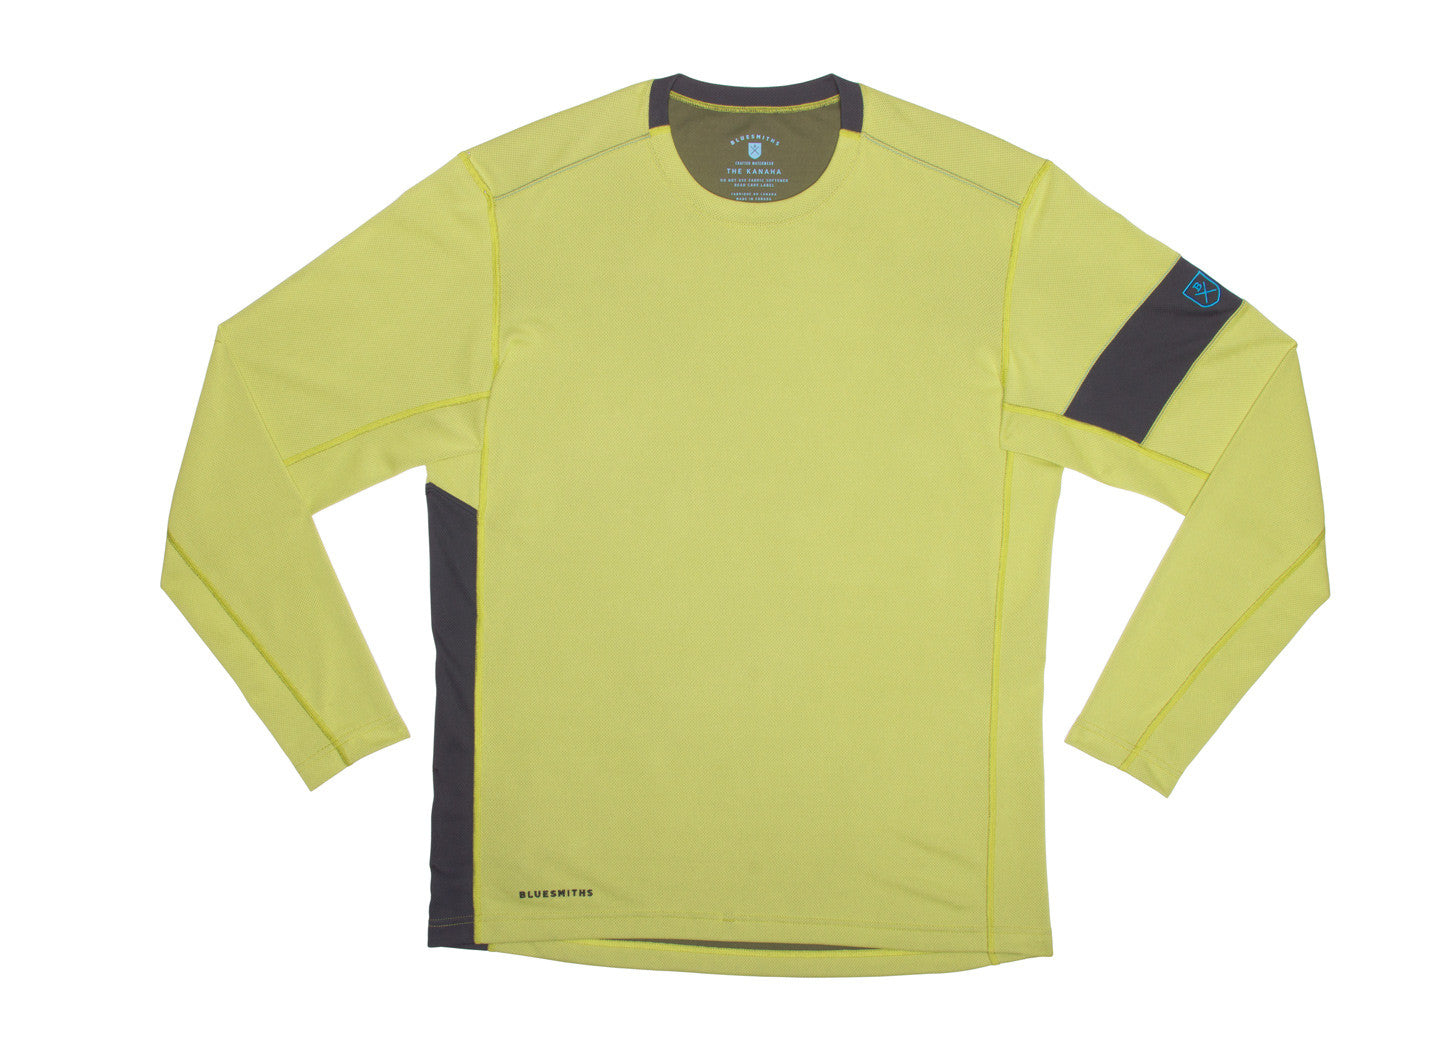 7ce47b5f ... The Kanaha Hydrophobic Shirt for Men in Lime Yellow (Rich Navy) - The  World's ...